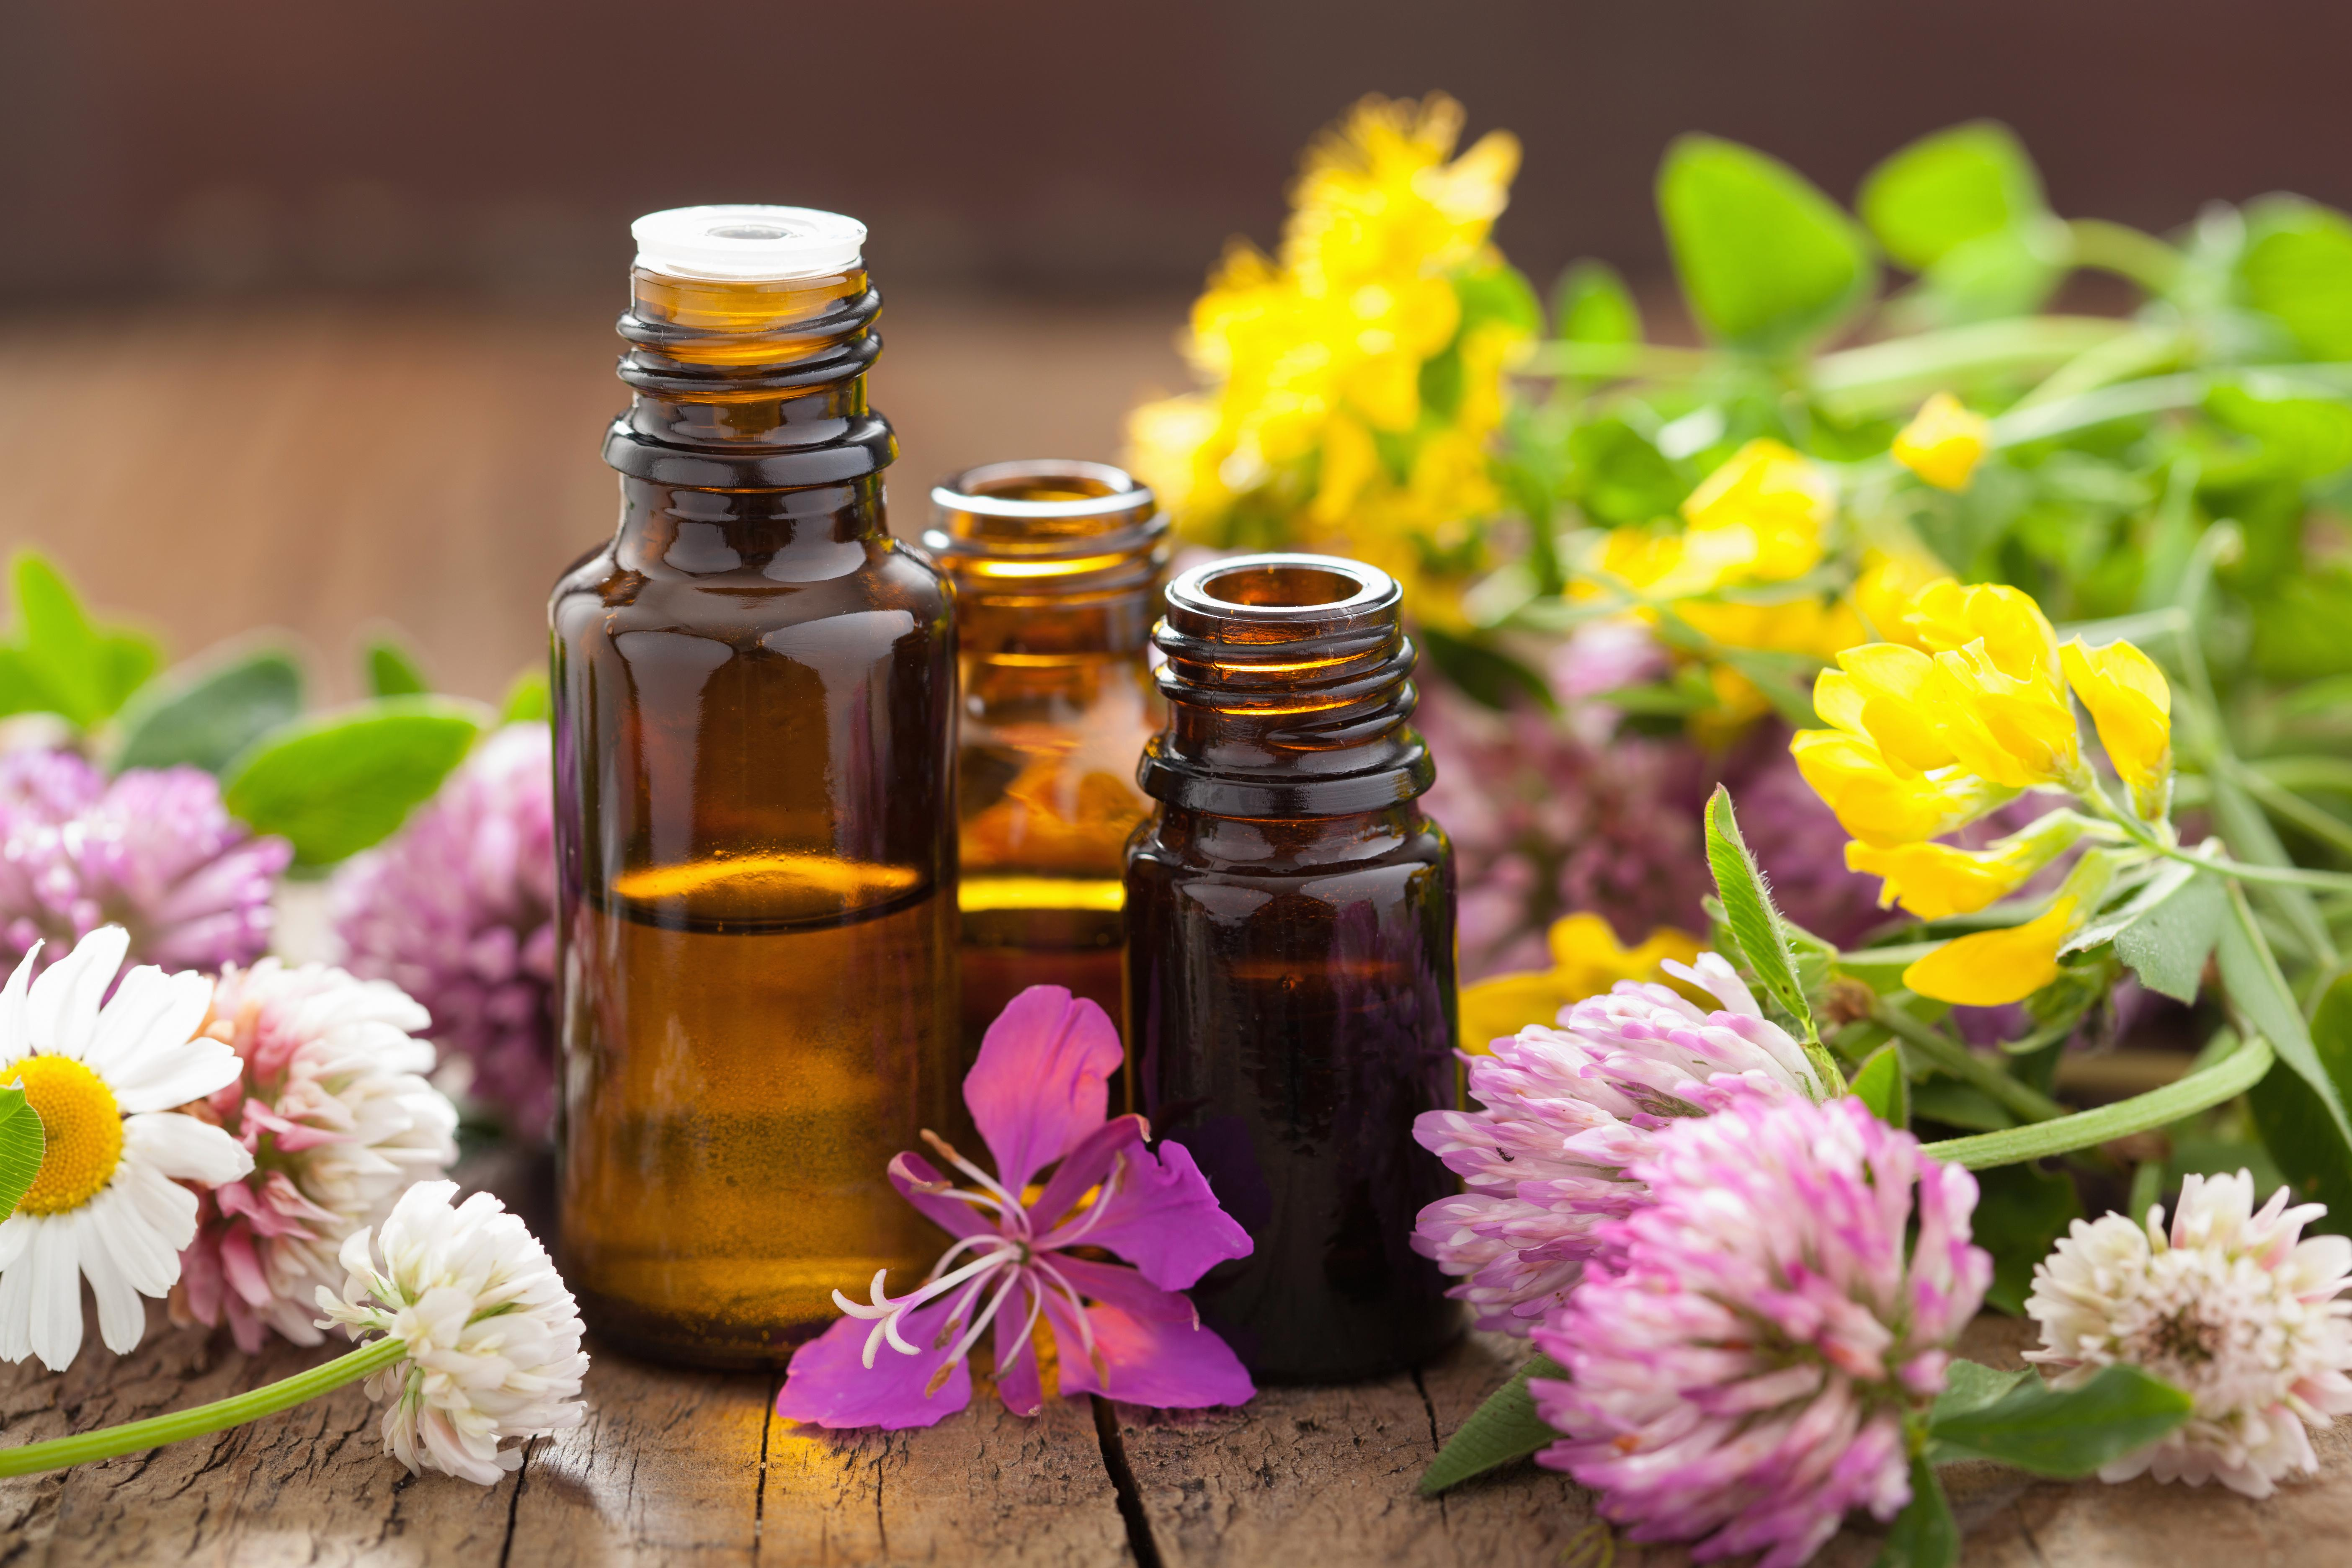 Getting Started with Essential Oils - Stockport